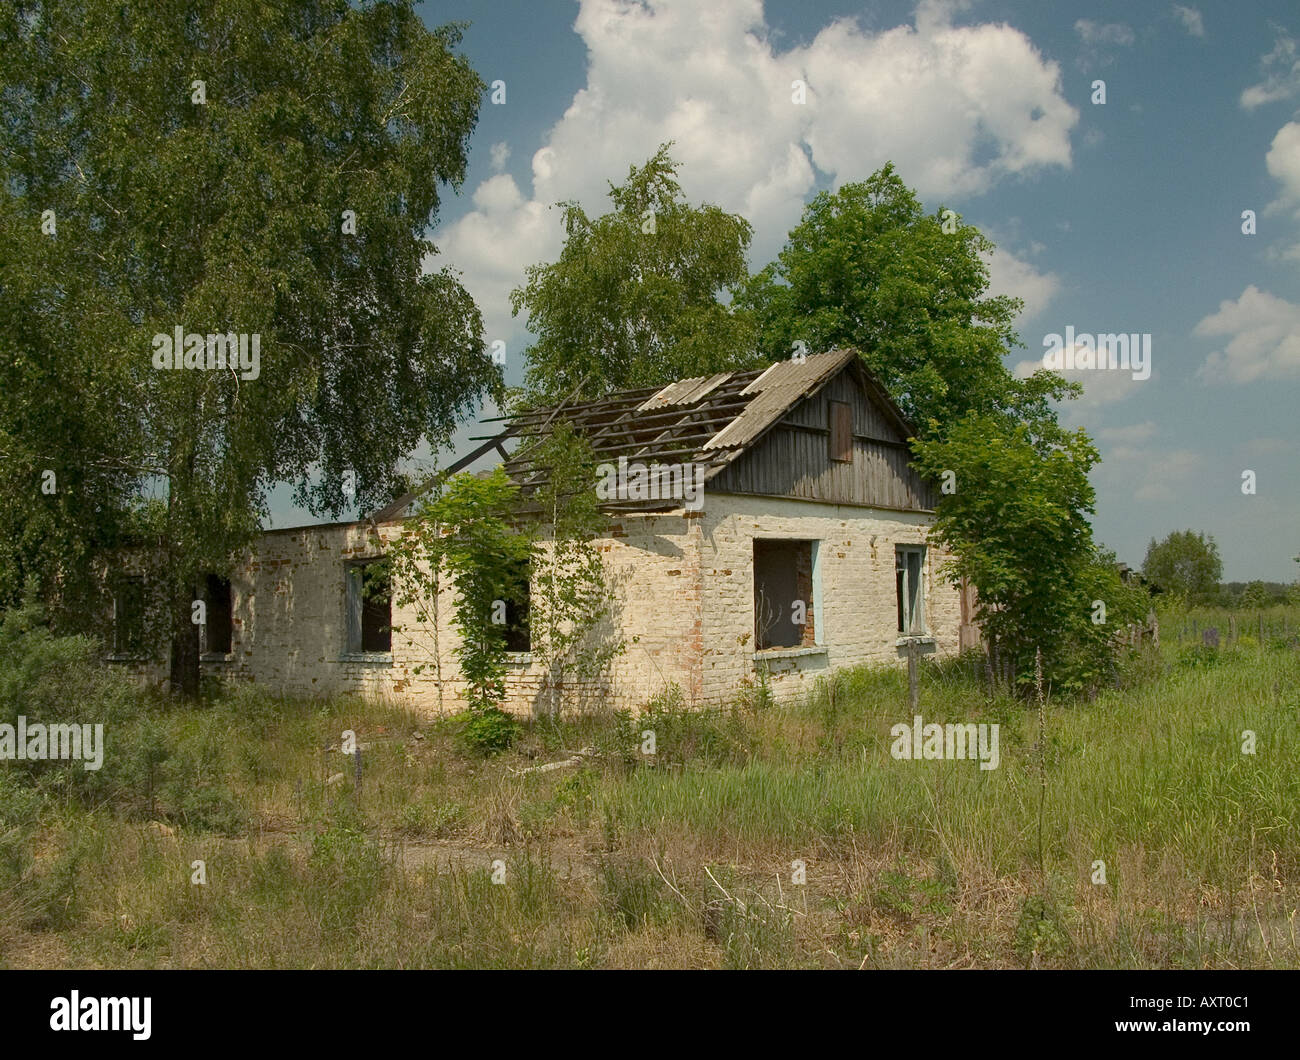 Derelict abandoned house in deserted Belarussian village, Chernobyl exclusion zone near Ukraine Belarus state border - Stock Image